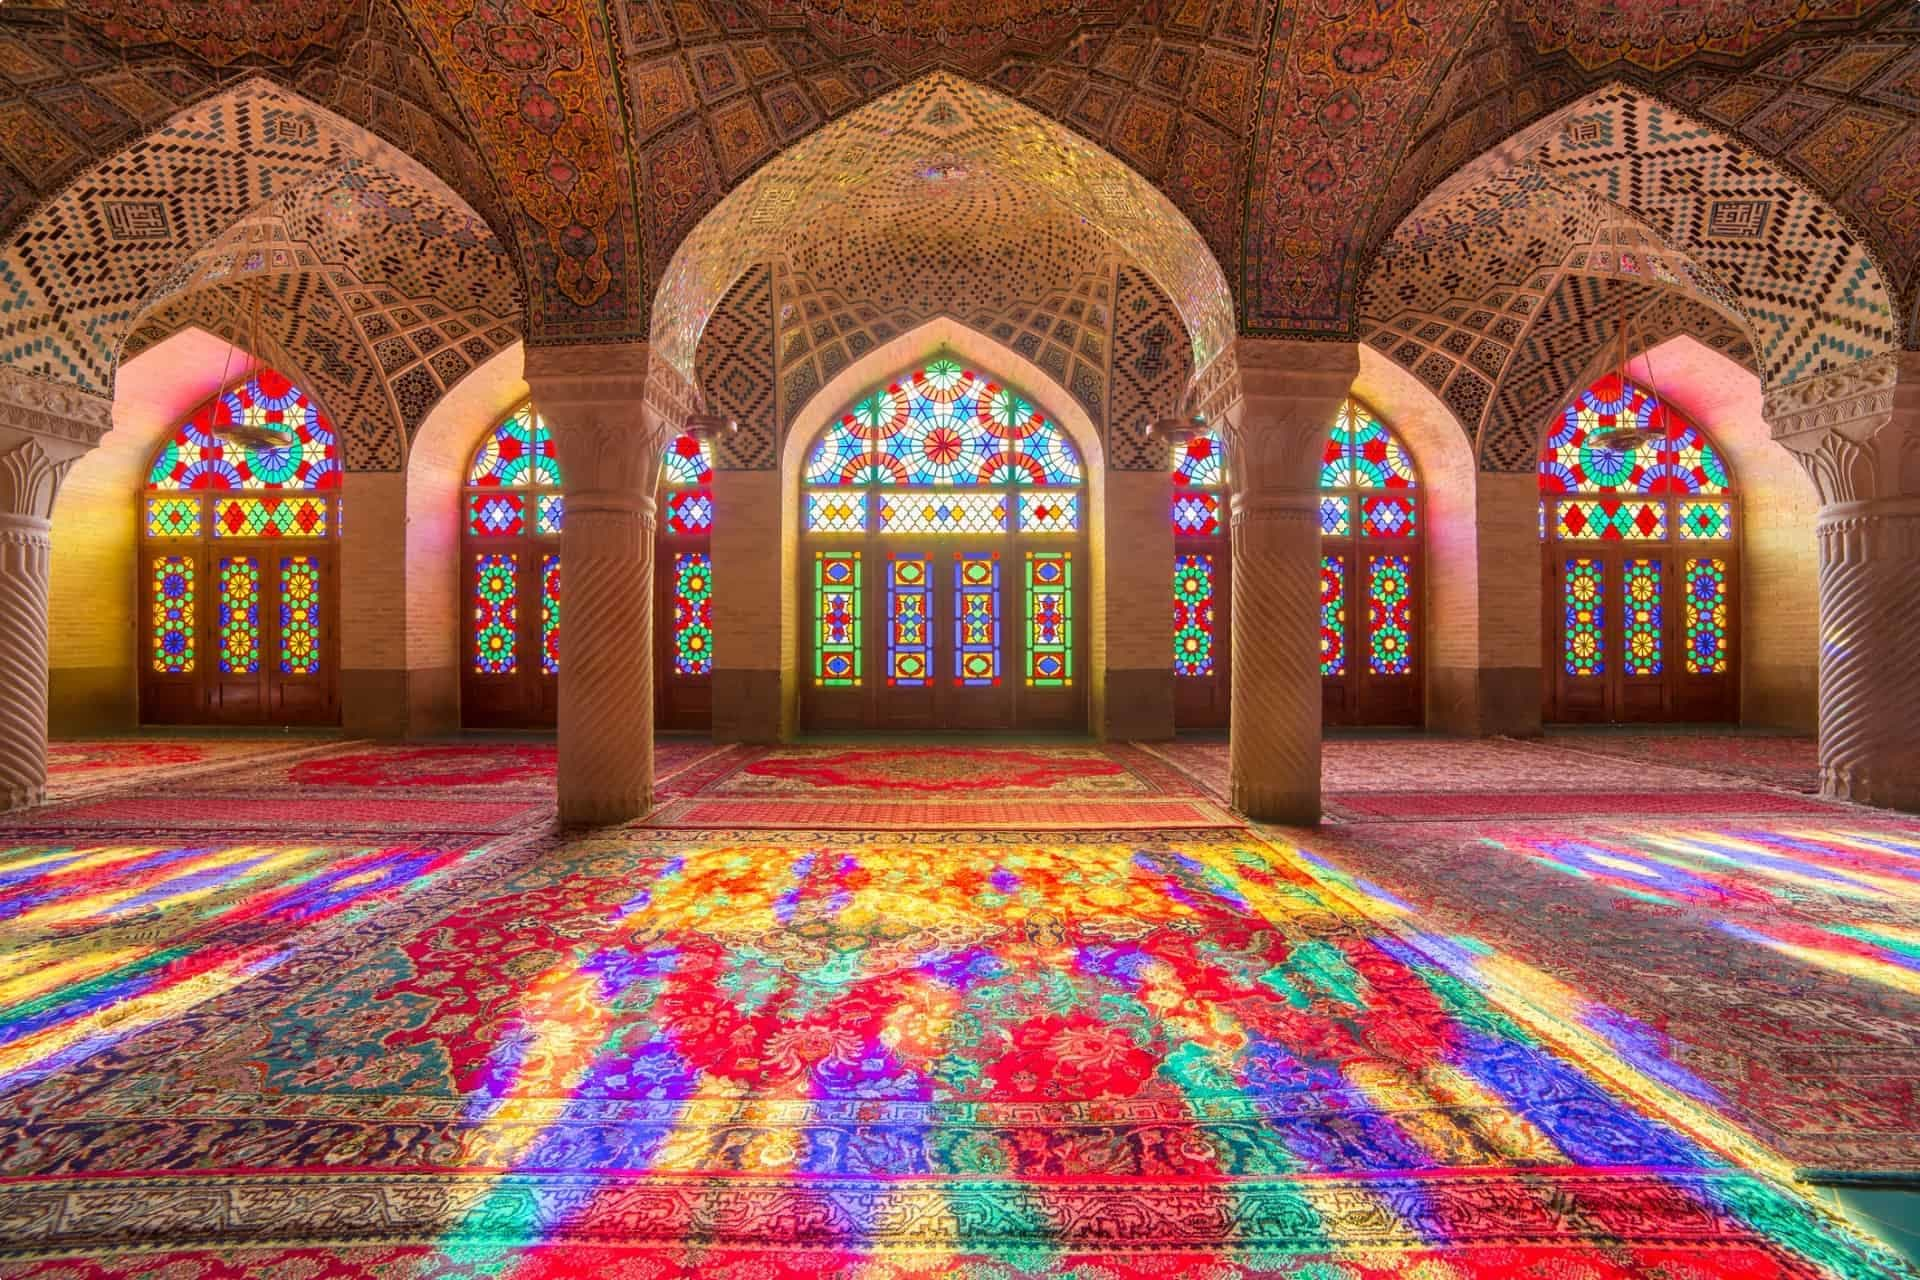 Inside the Pink Mosque in Shiraz, Iran